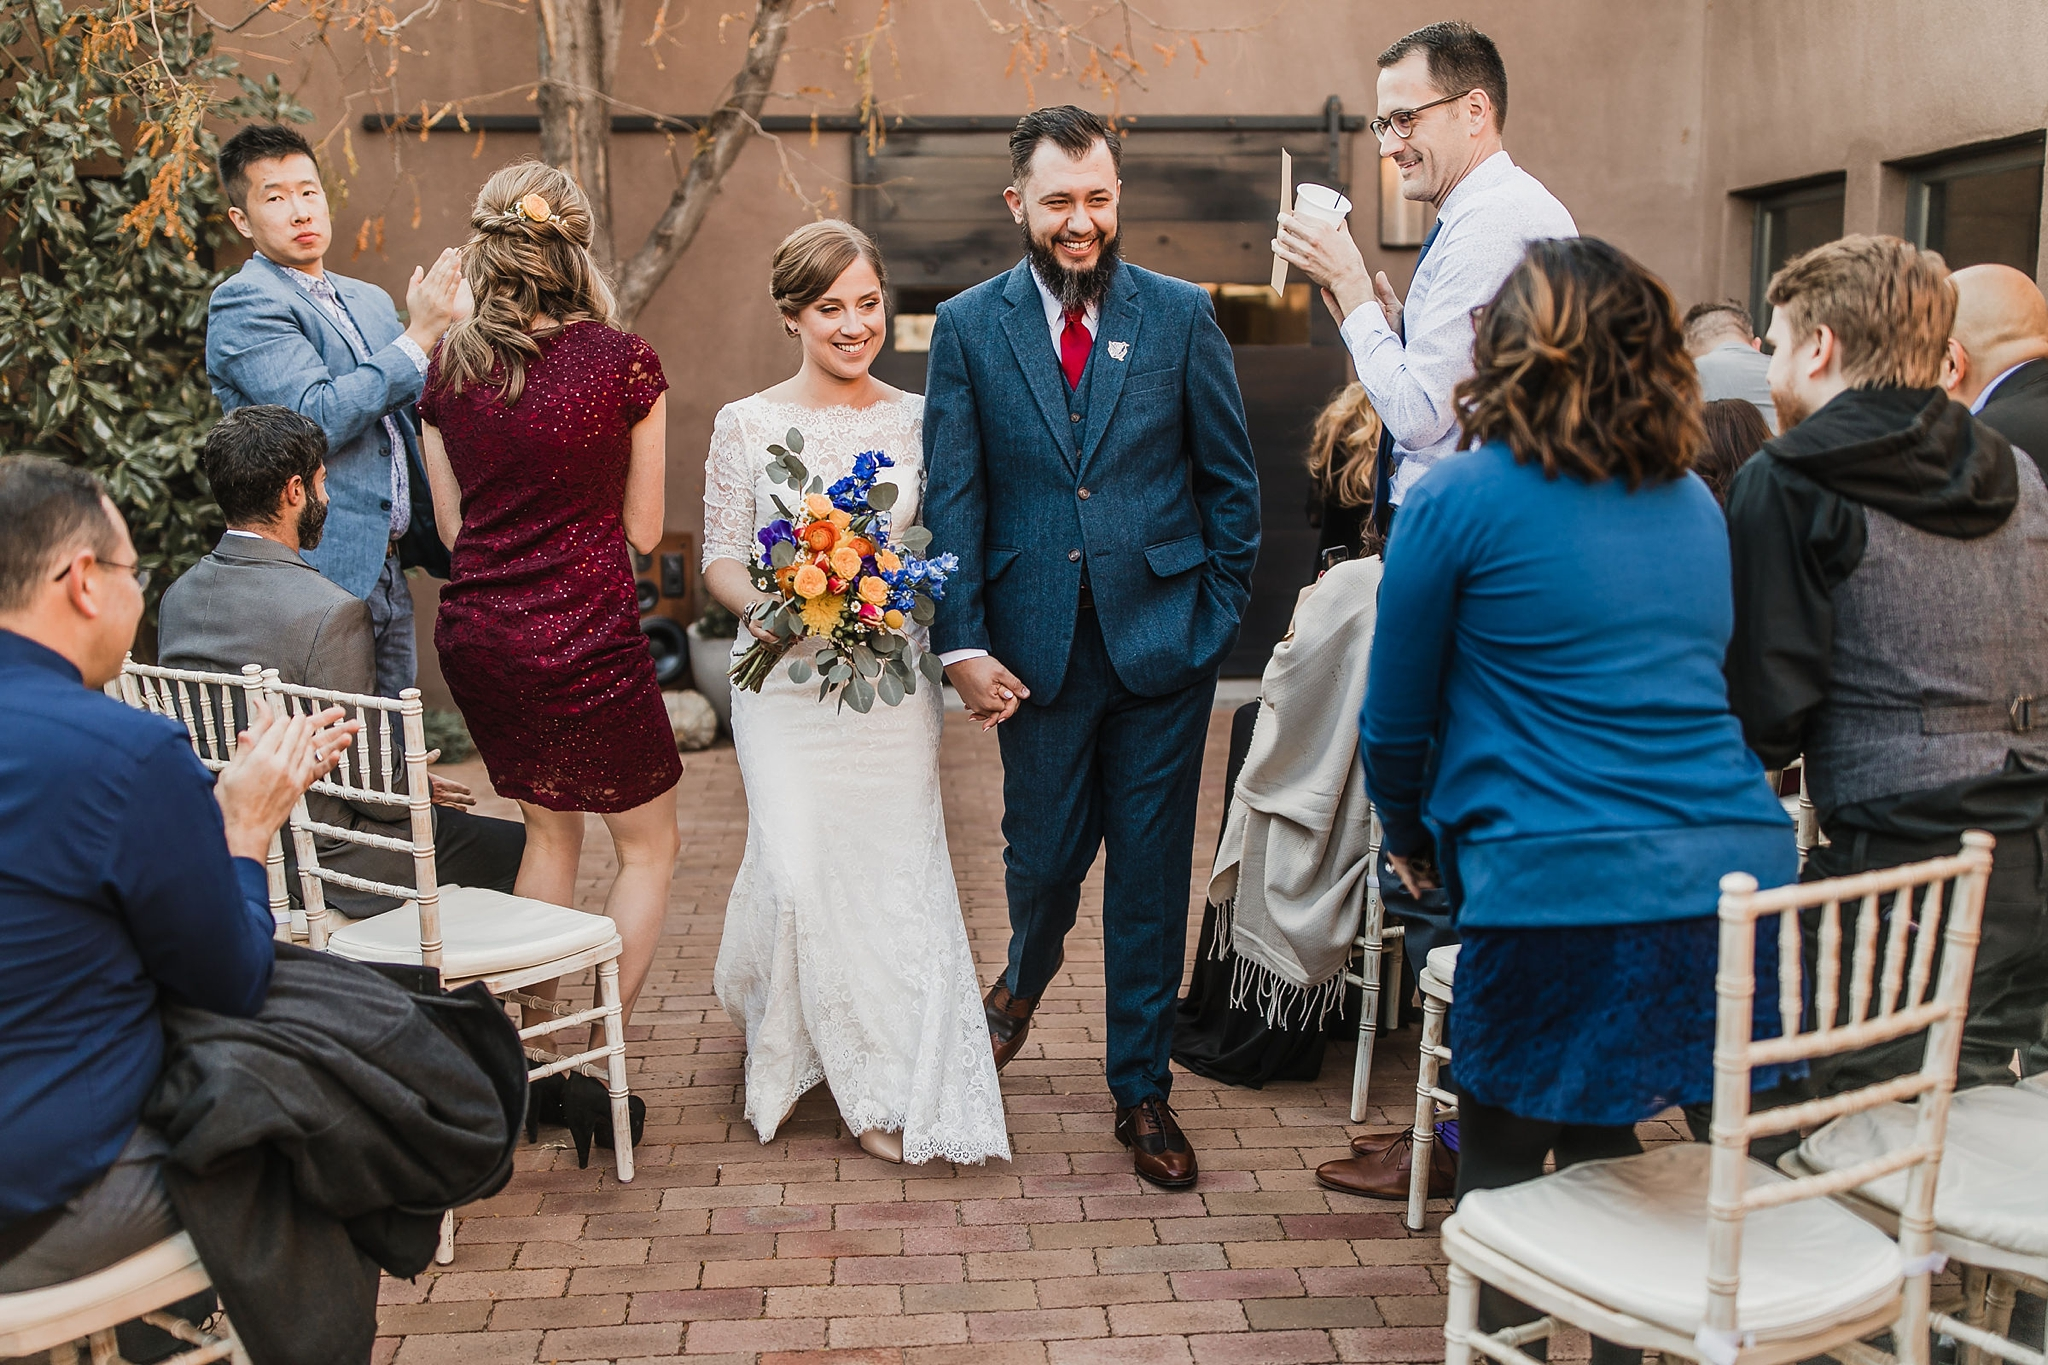 Alicia+lucia+photography+-+albuquerque+wedding+photographer+-+santa+fe+wedding+photography+-+new+mexico+wedding+photographer+-+albuquerque+wedding+-+sarabande+bed+breakfast+-+bed+and+breakfast+wedding_0060.jpg